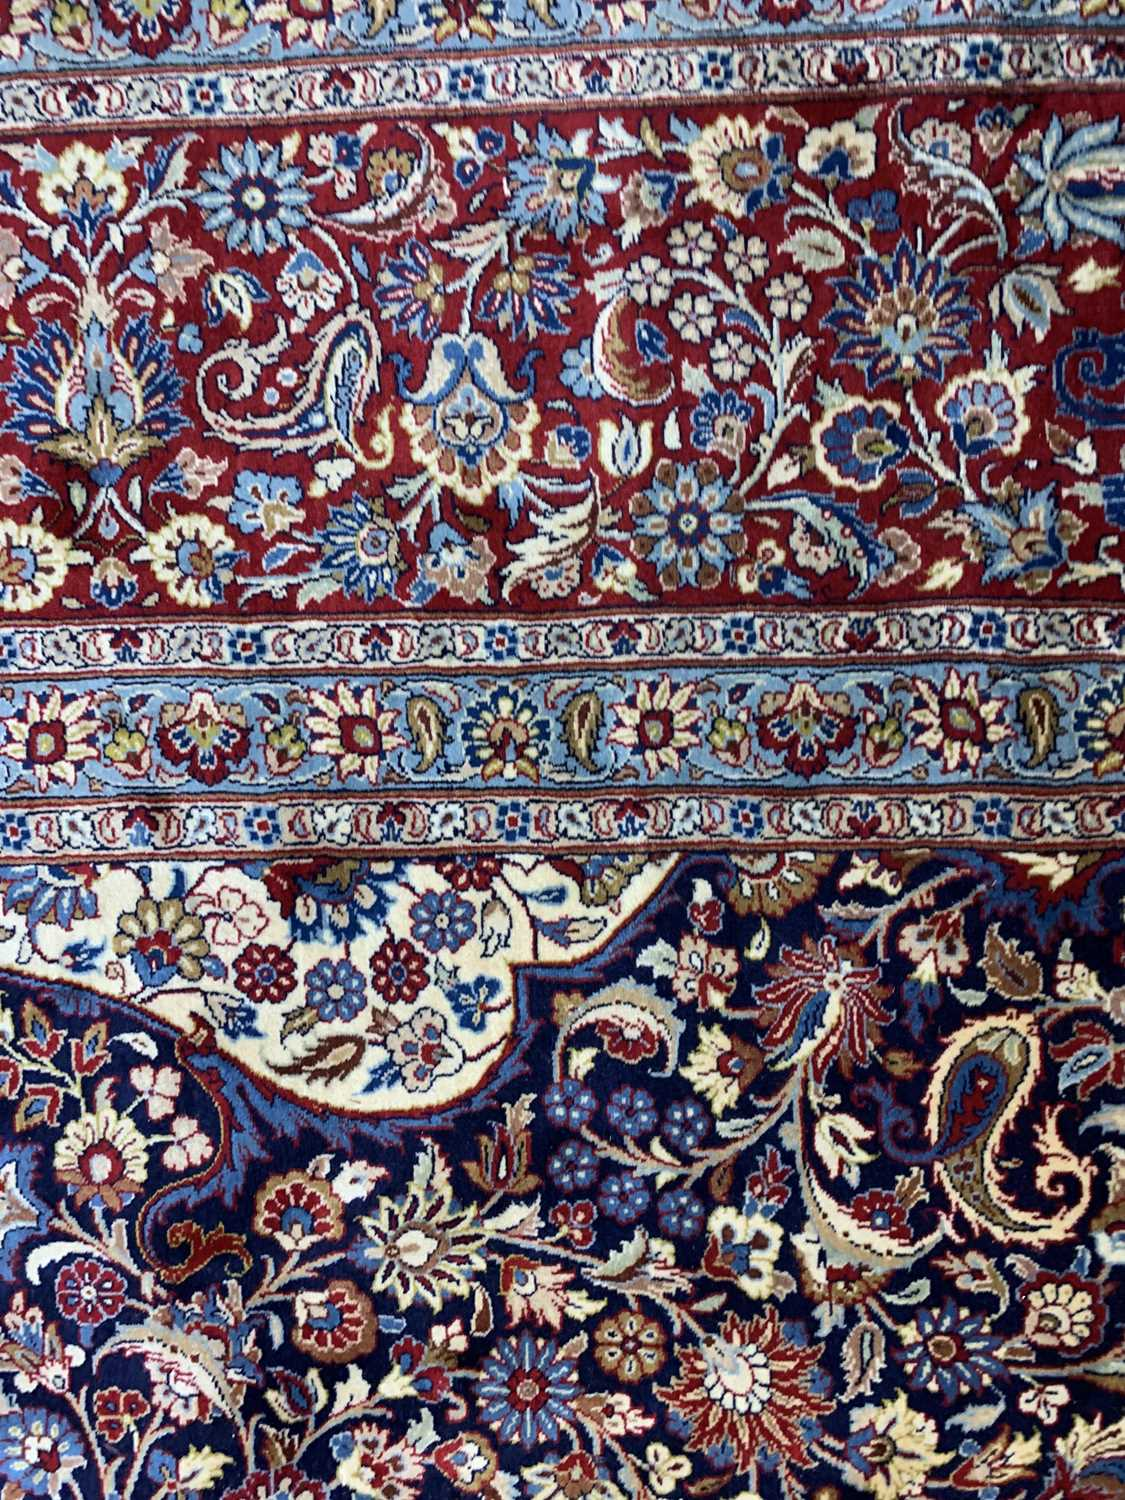 A large Persian Khorassan carpet, - Image 10 of 17